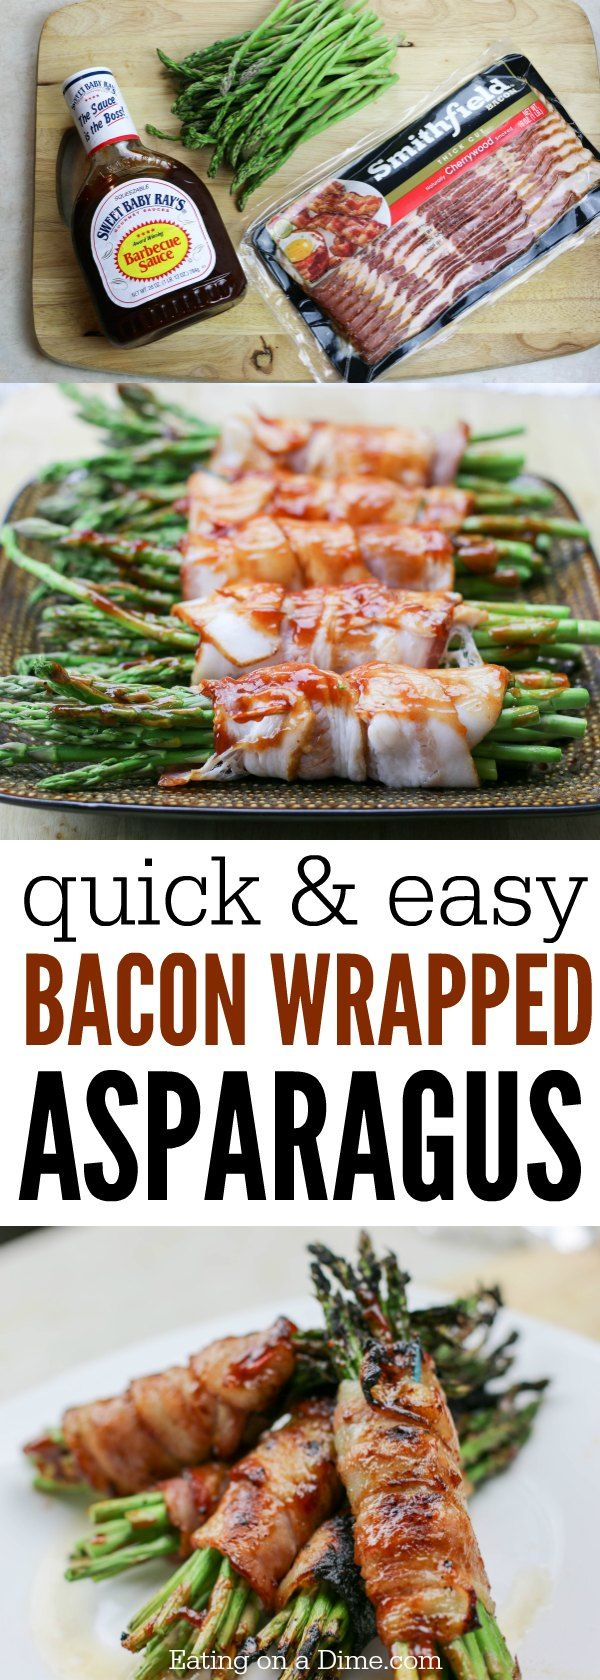 Asparagus wrapped in bacon? Why yes, bacon makes everything better. Try this easy Bacon Wrapped Asparagus Recipe that is packed with flavor!